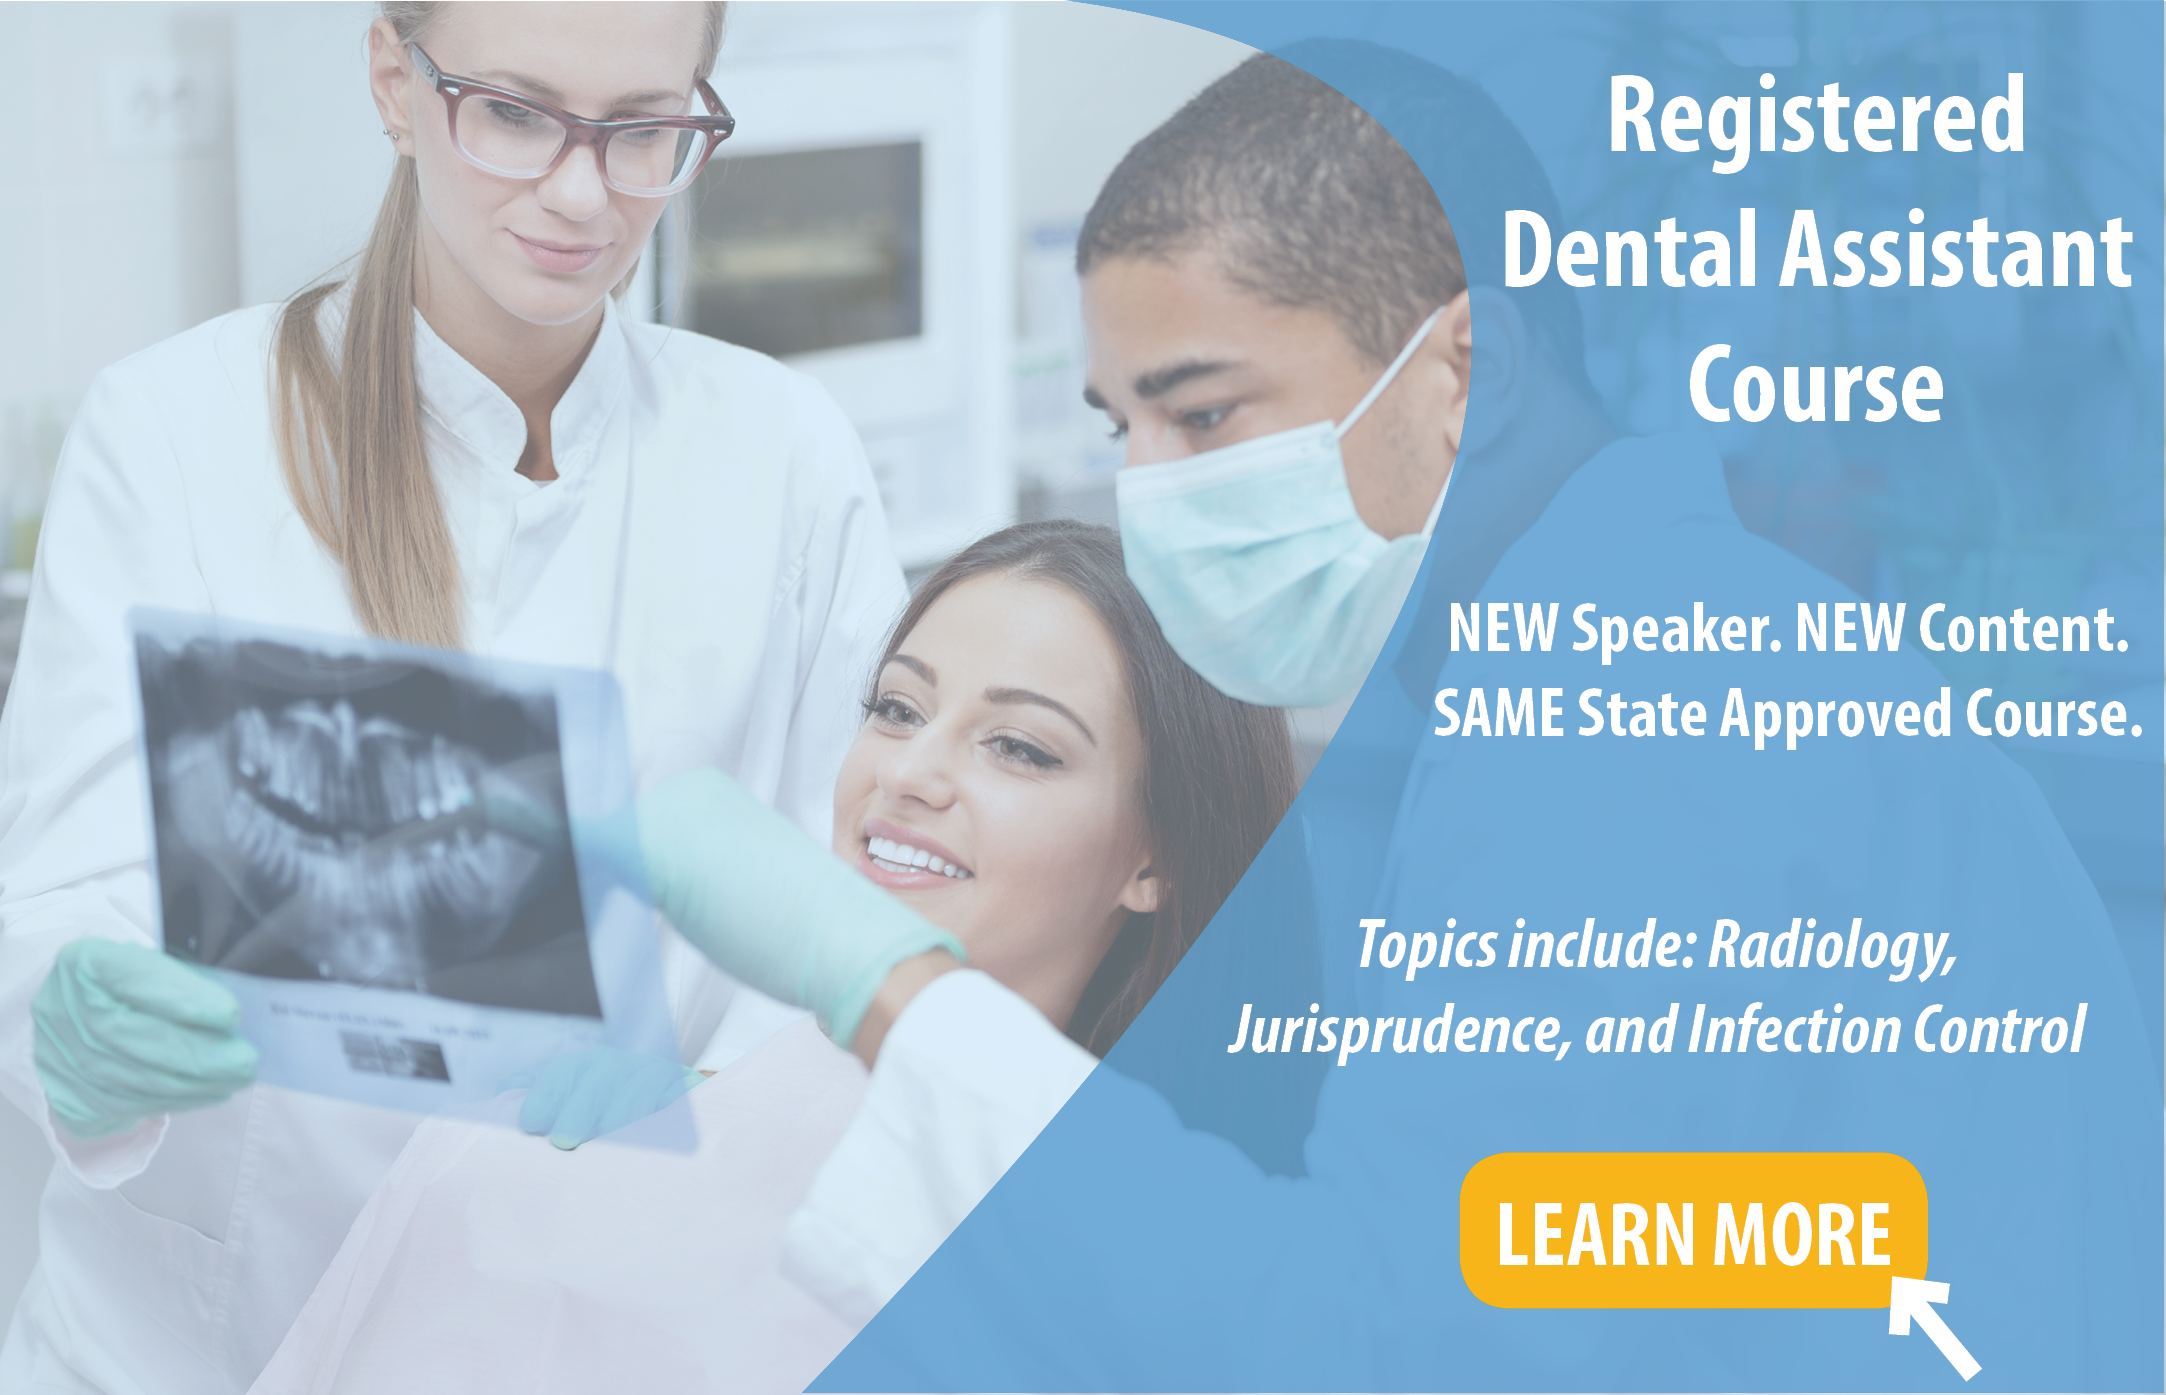 Online Registered Dental Assistant Course in Texas